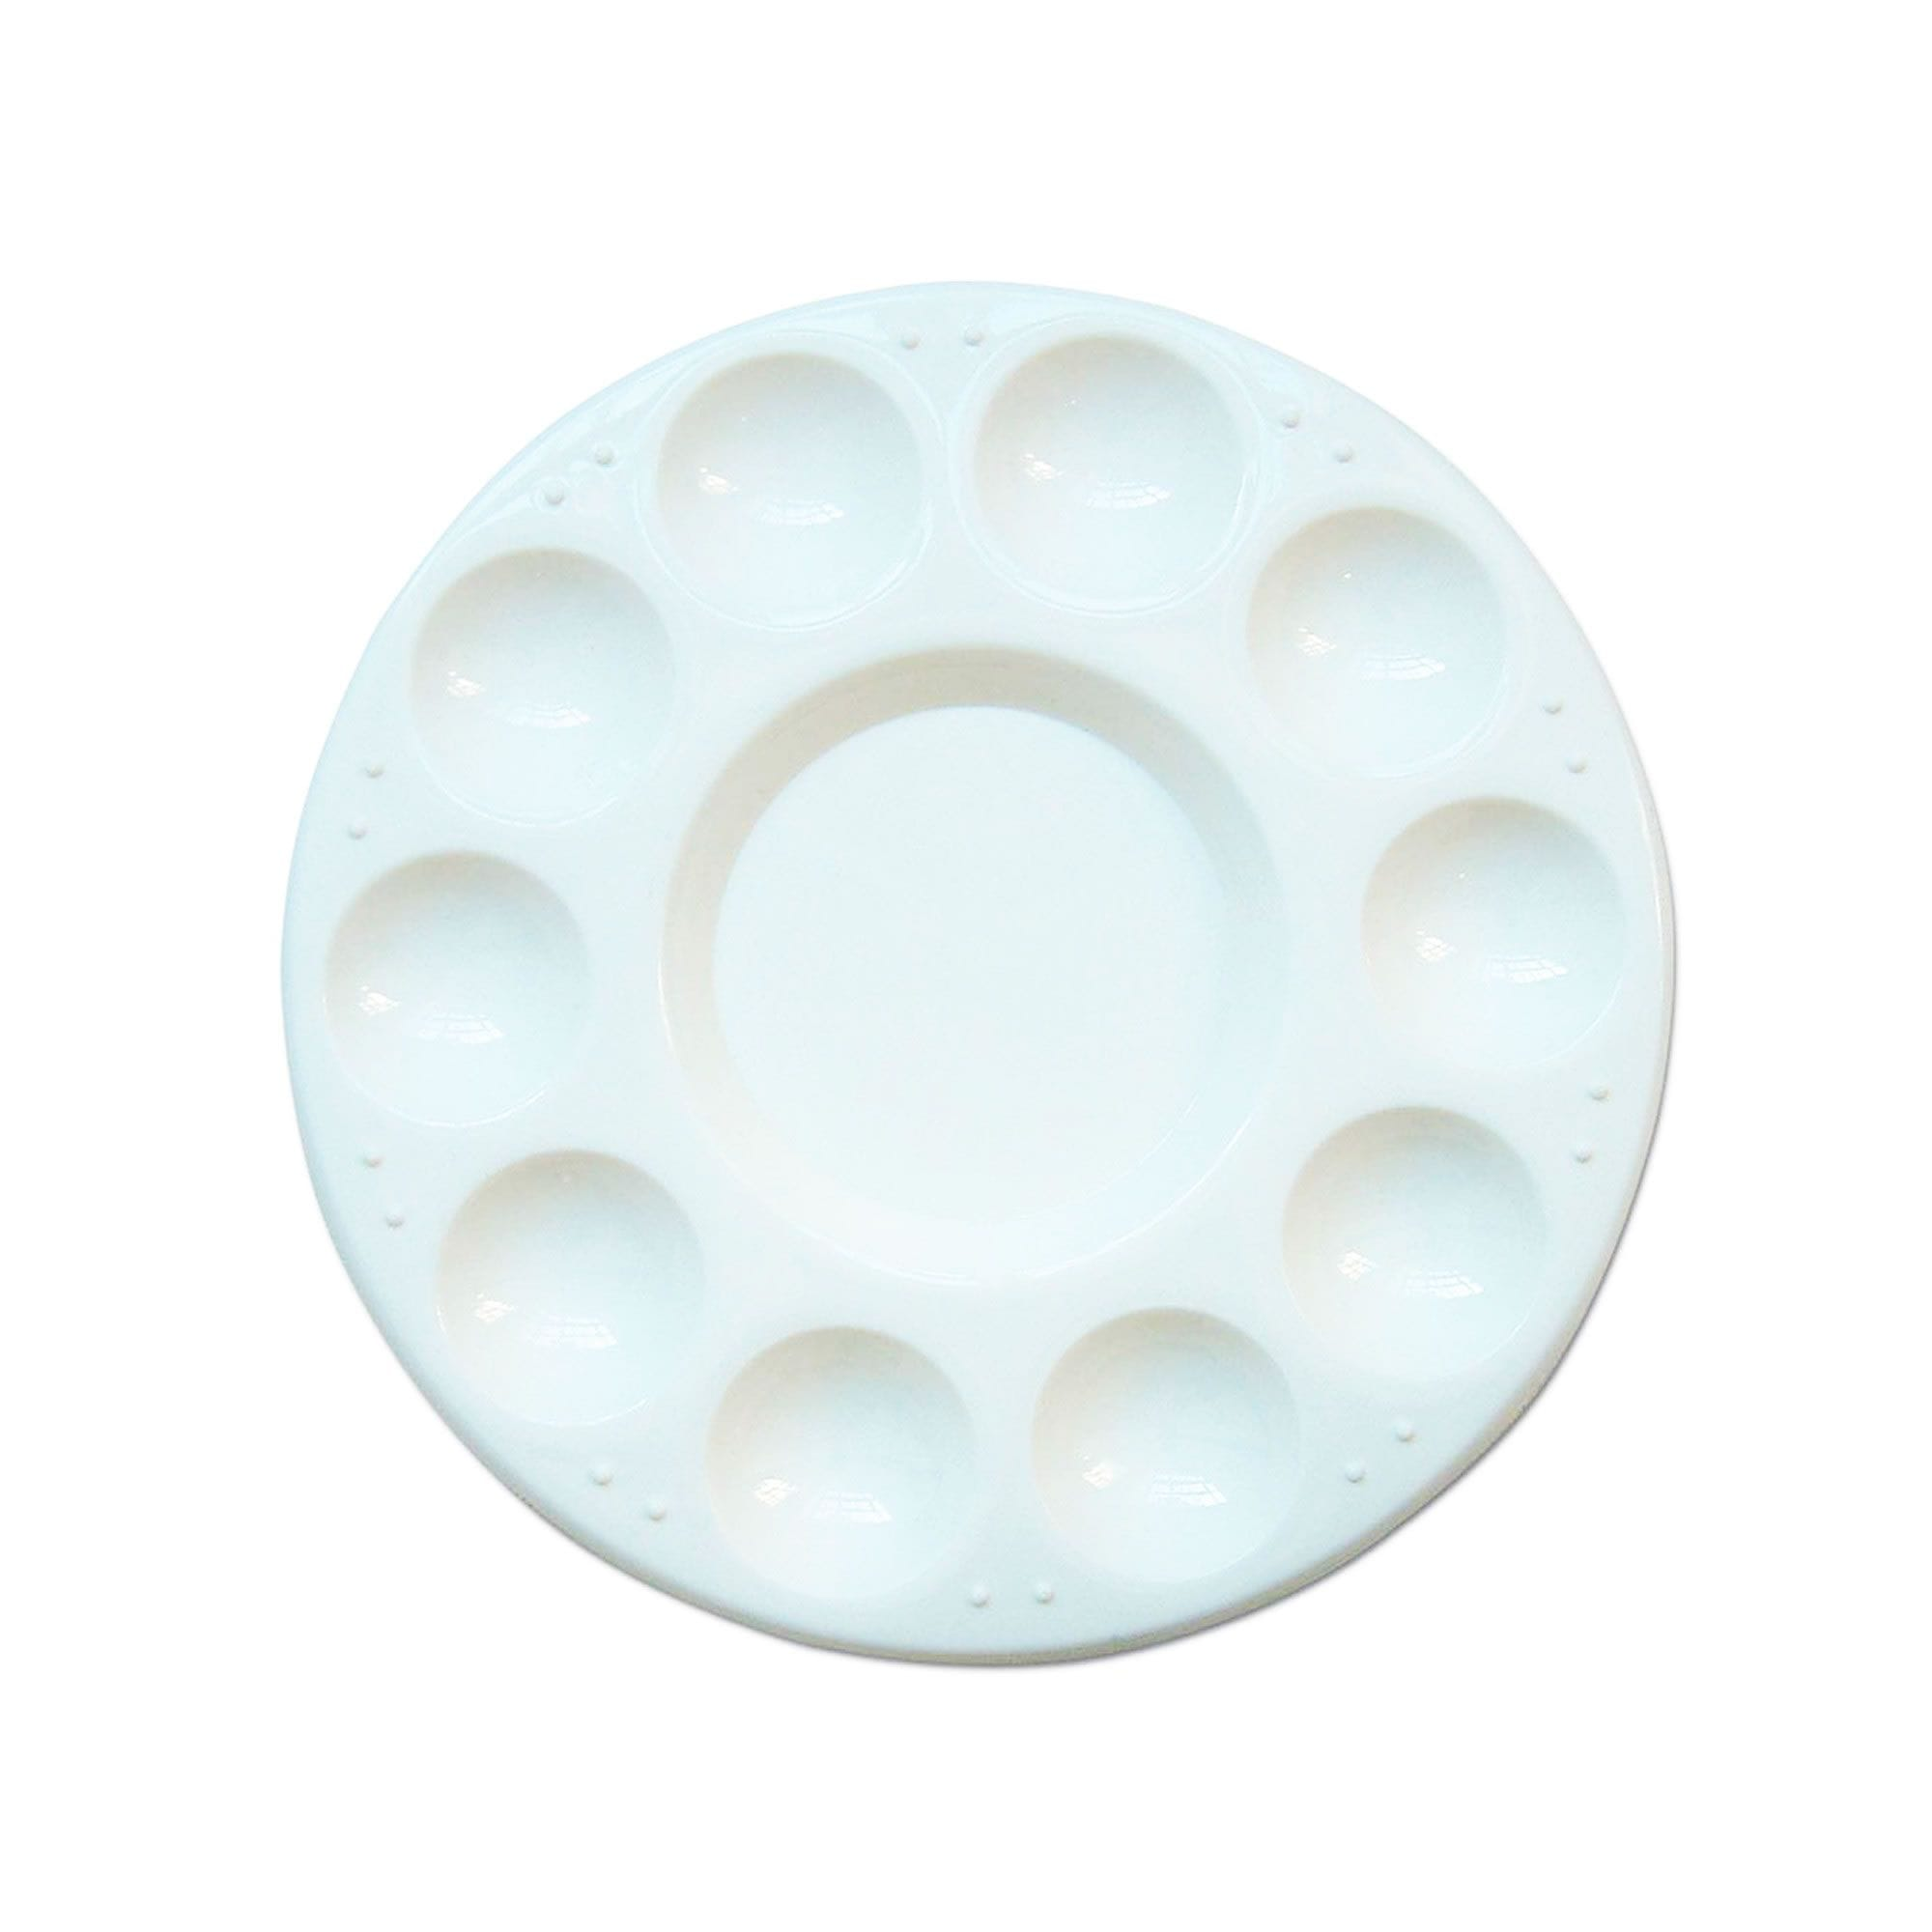 Royal and Langnickel Plastic 10 Well Oval Paint Palette